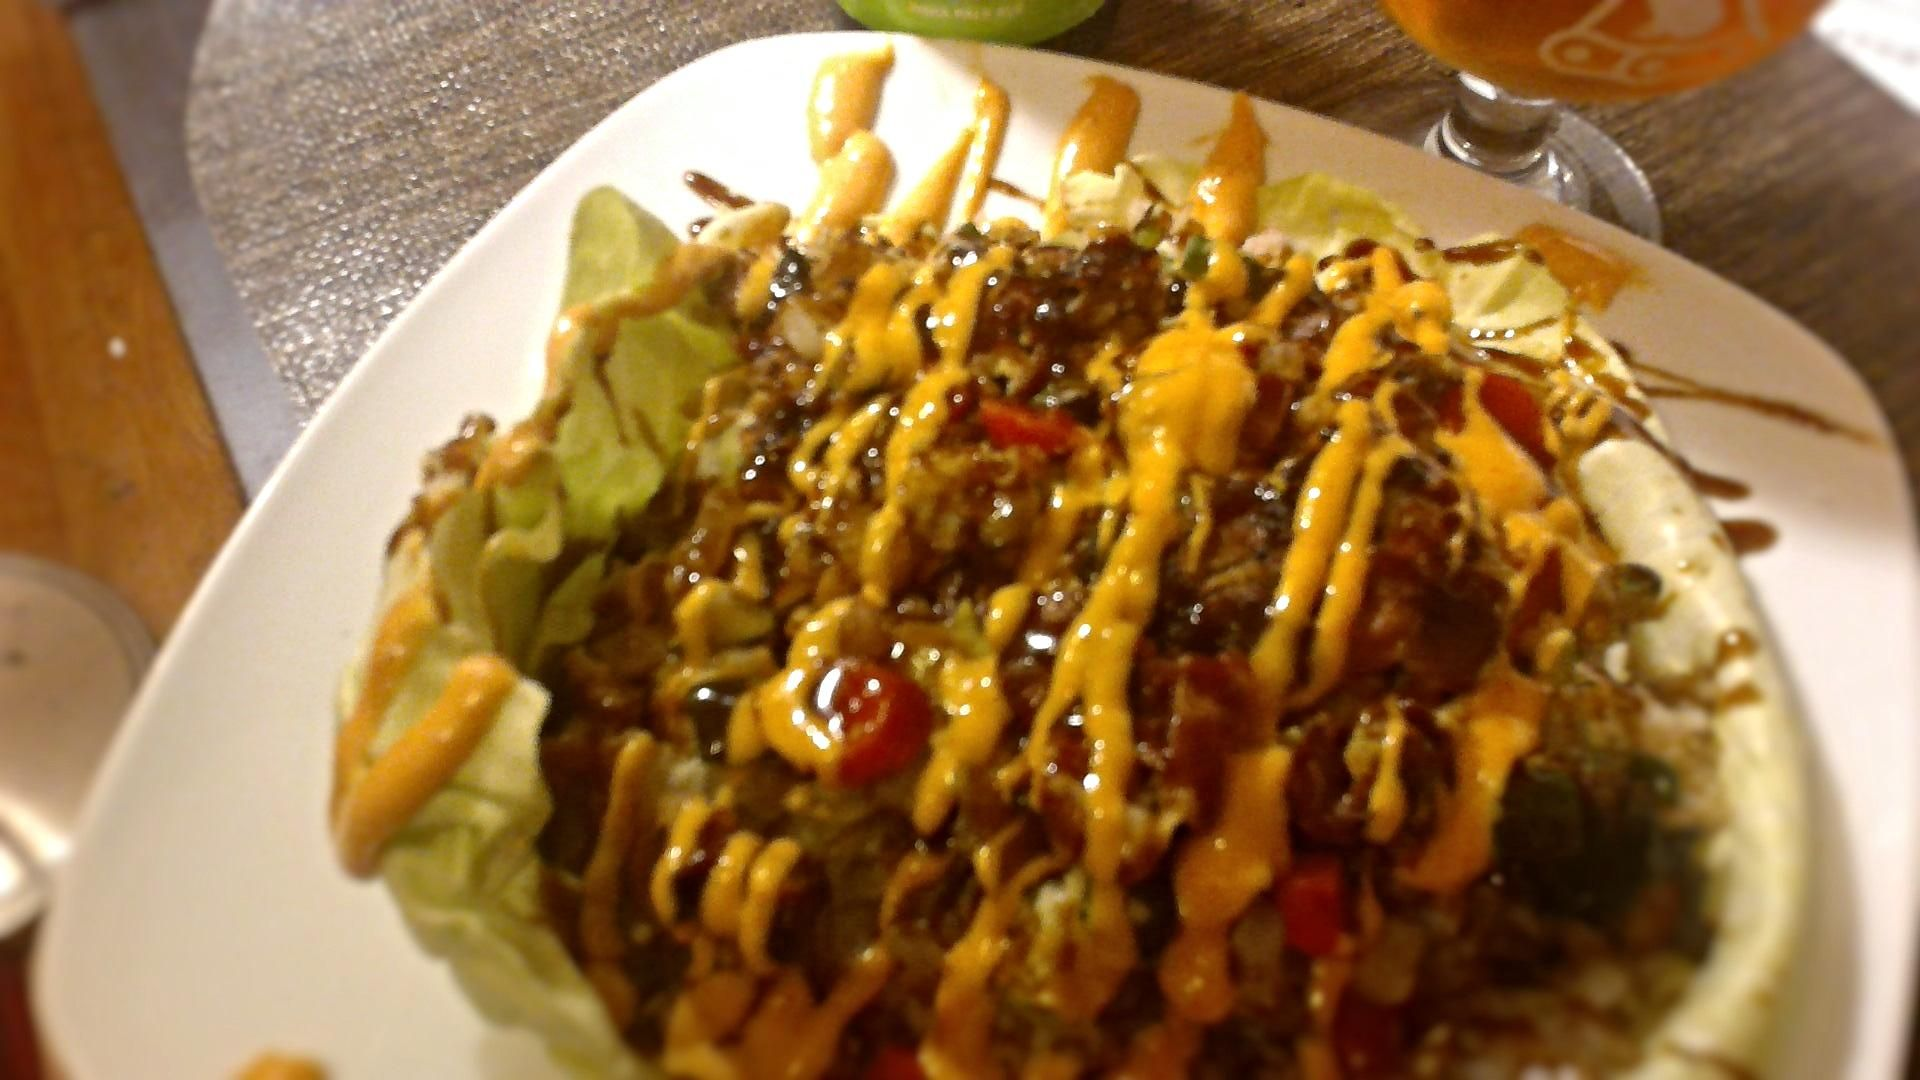 [Homemade] Fall Okonomiyaki [http://bit.ly/2fxjd9M] #recipes #food #cooking #delicious #foodie #foodrecipes #cook #recipe #health